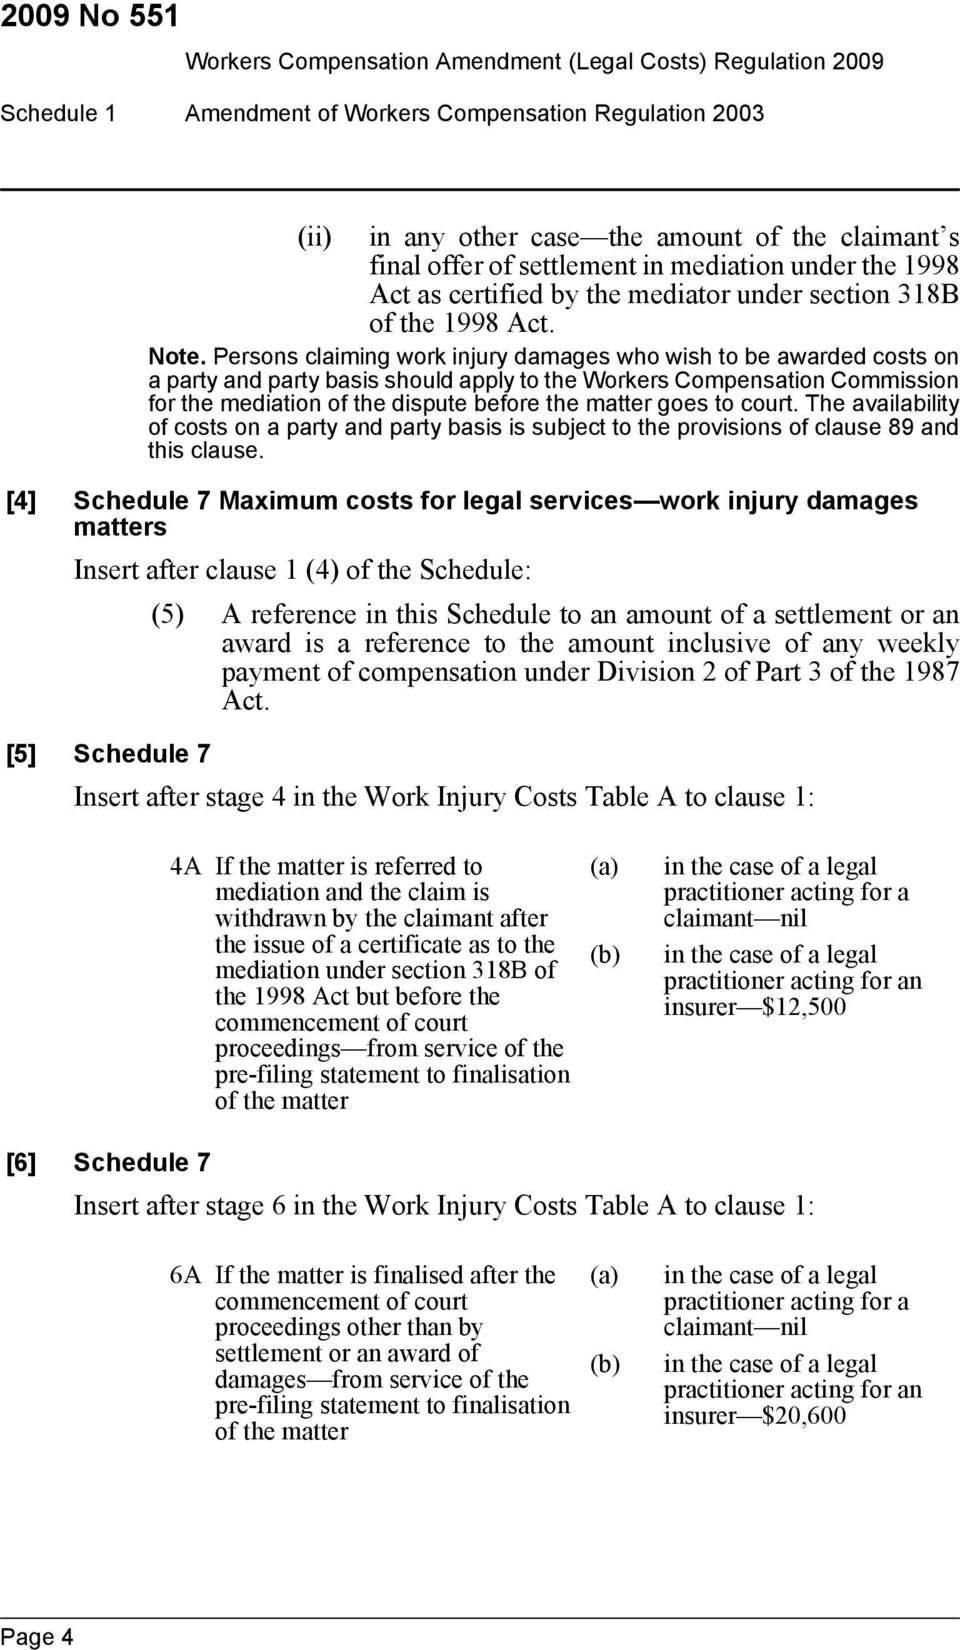 Persons claiming work injury damages who wish to be awarded costs on a party and party basis should apply to the Workers Compensation Commission for the mediation of the dispute before the matter